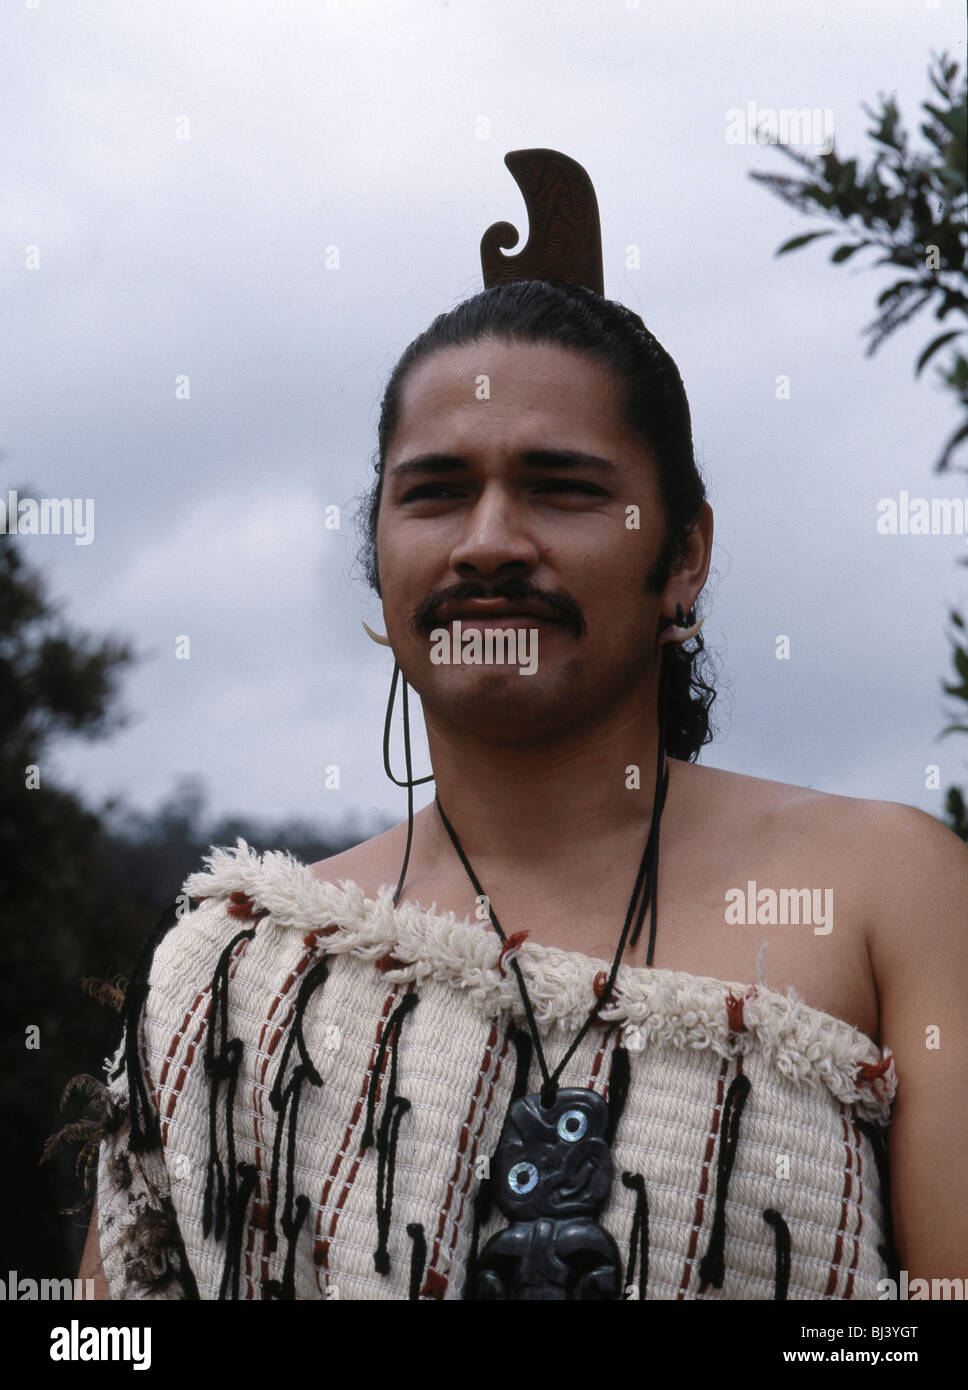 Maori Man: A Maori Man Wearing Traditional Dress And A Hei-tiki